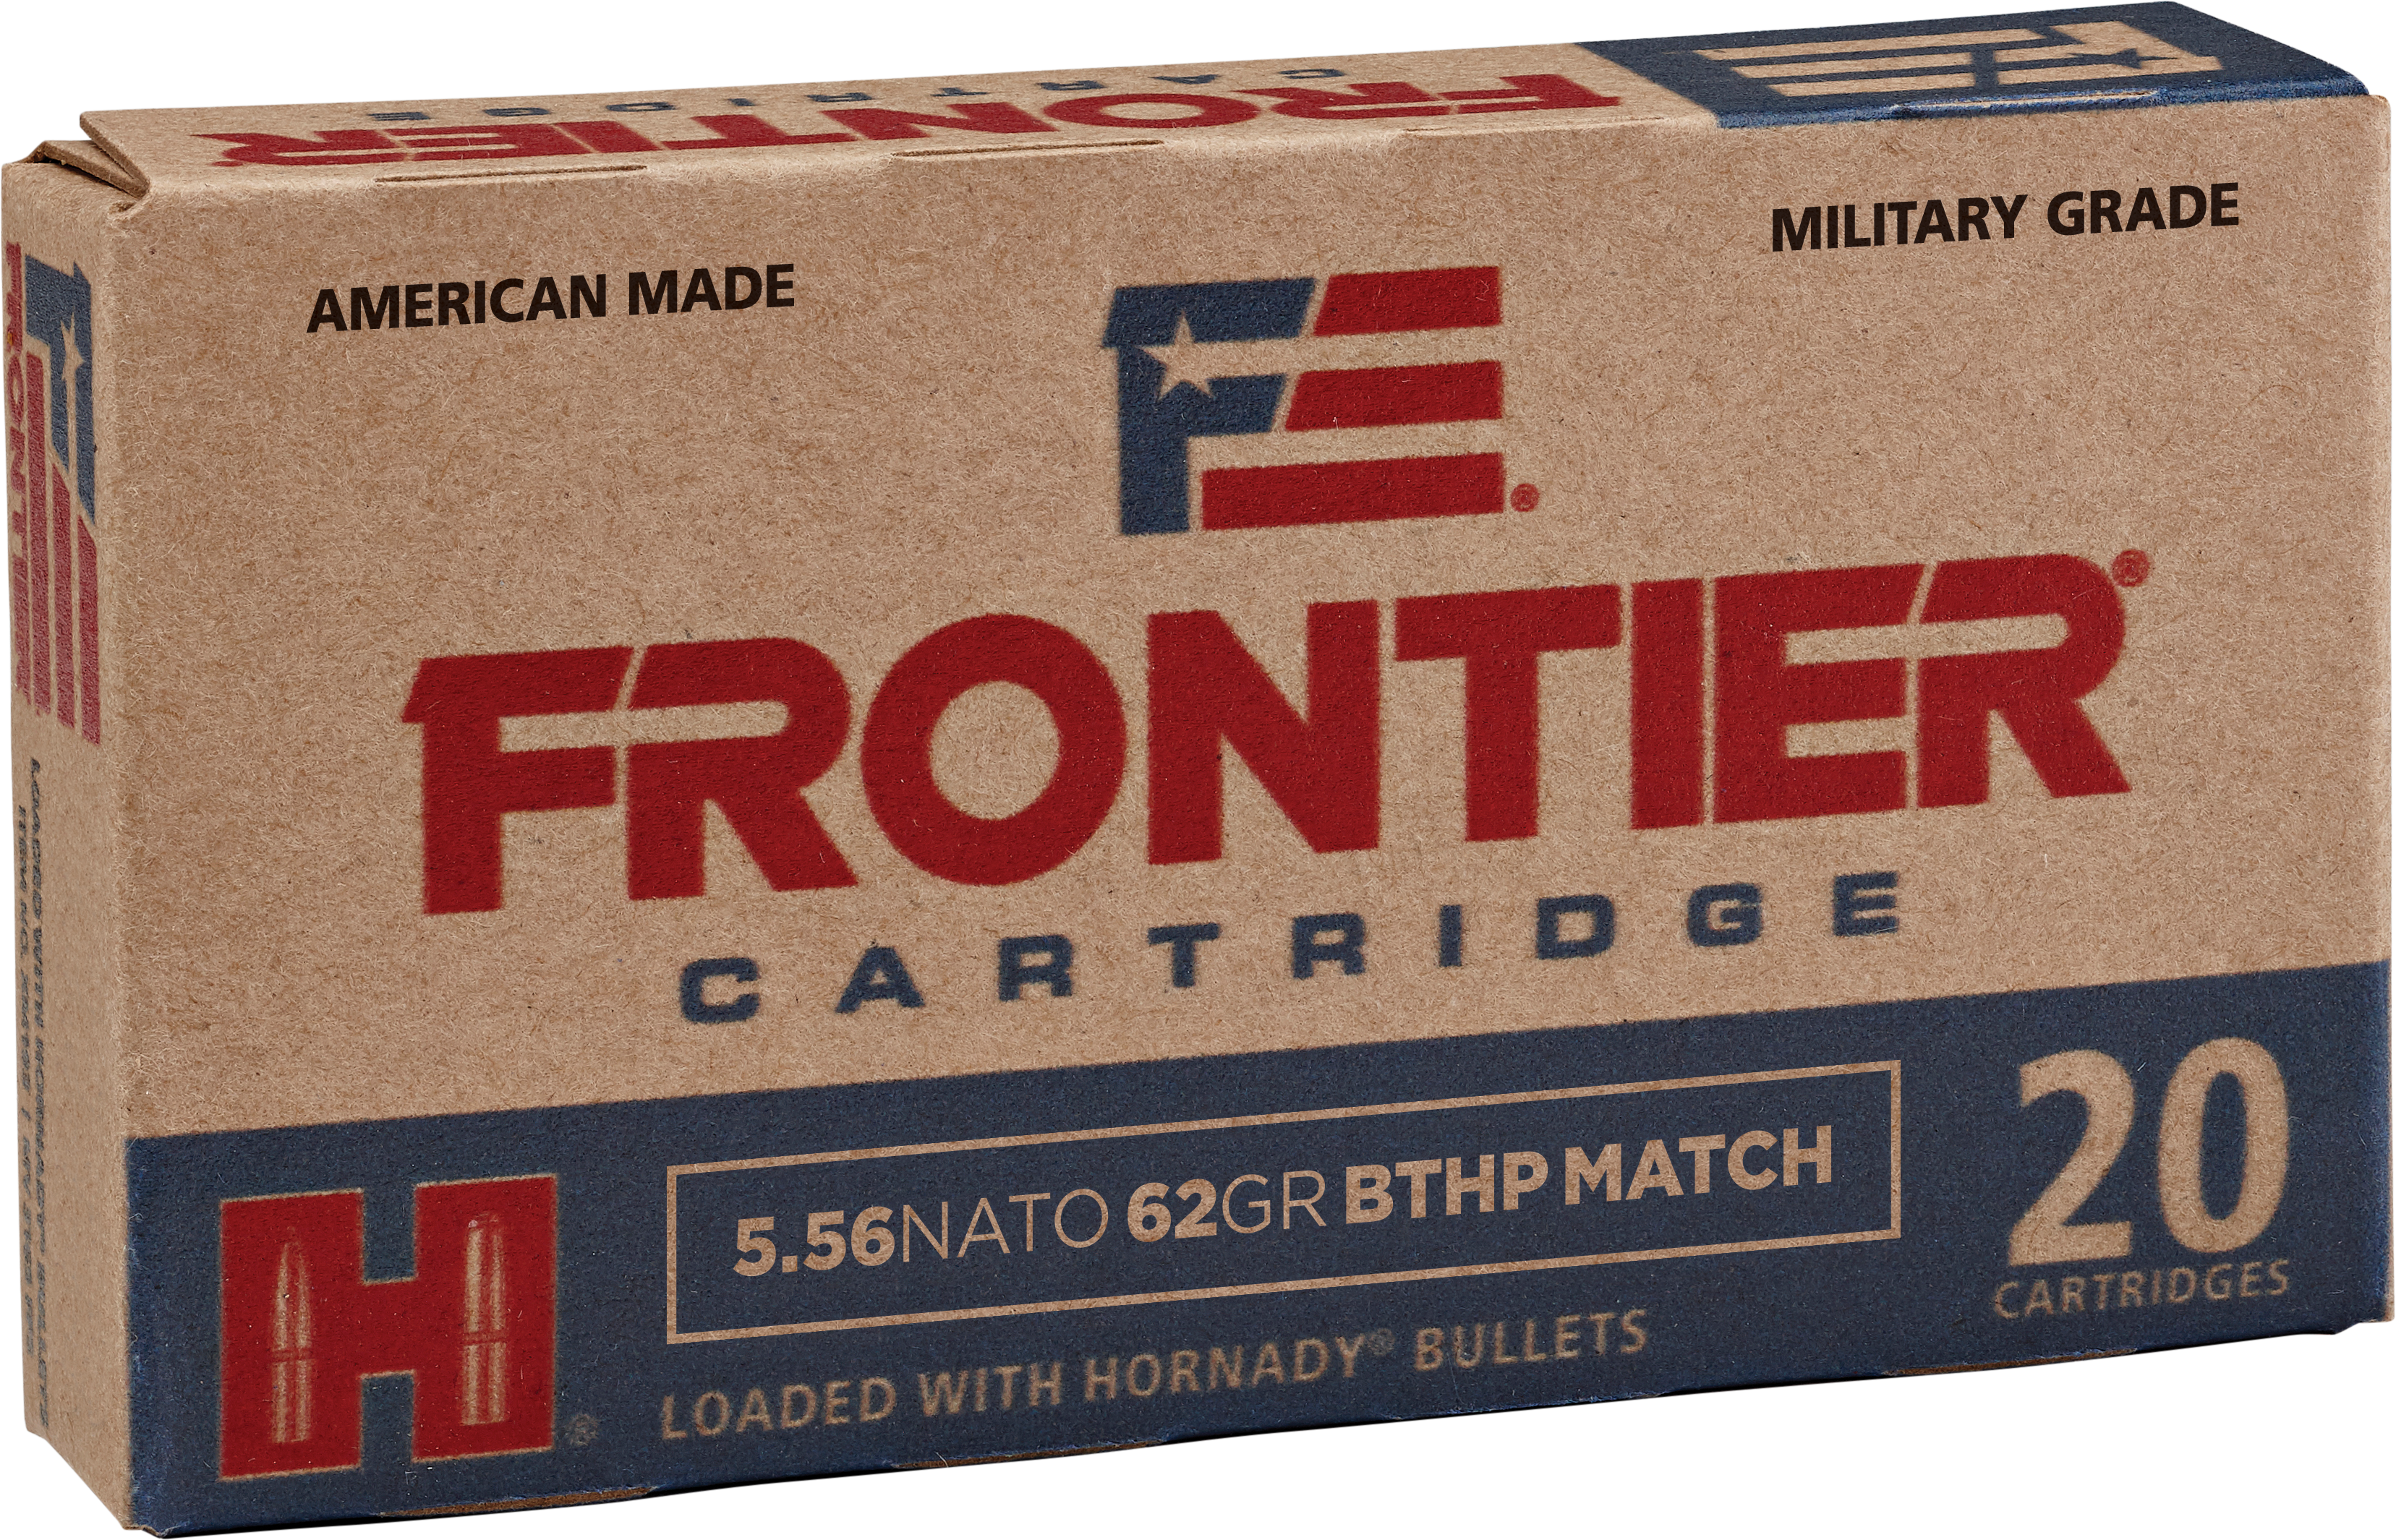 Frontier Cartridge Military Grade Ammunition 5.56x45mm NATO 62GR Hornady Hollow Point Boat Tail - 400 Rounds